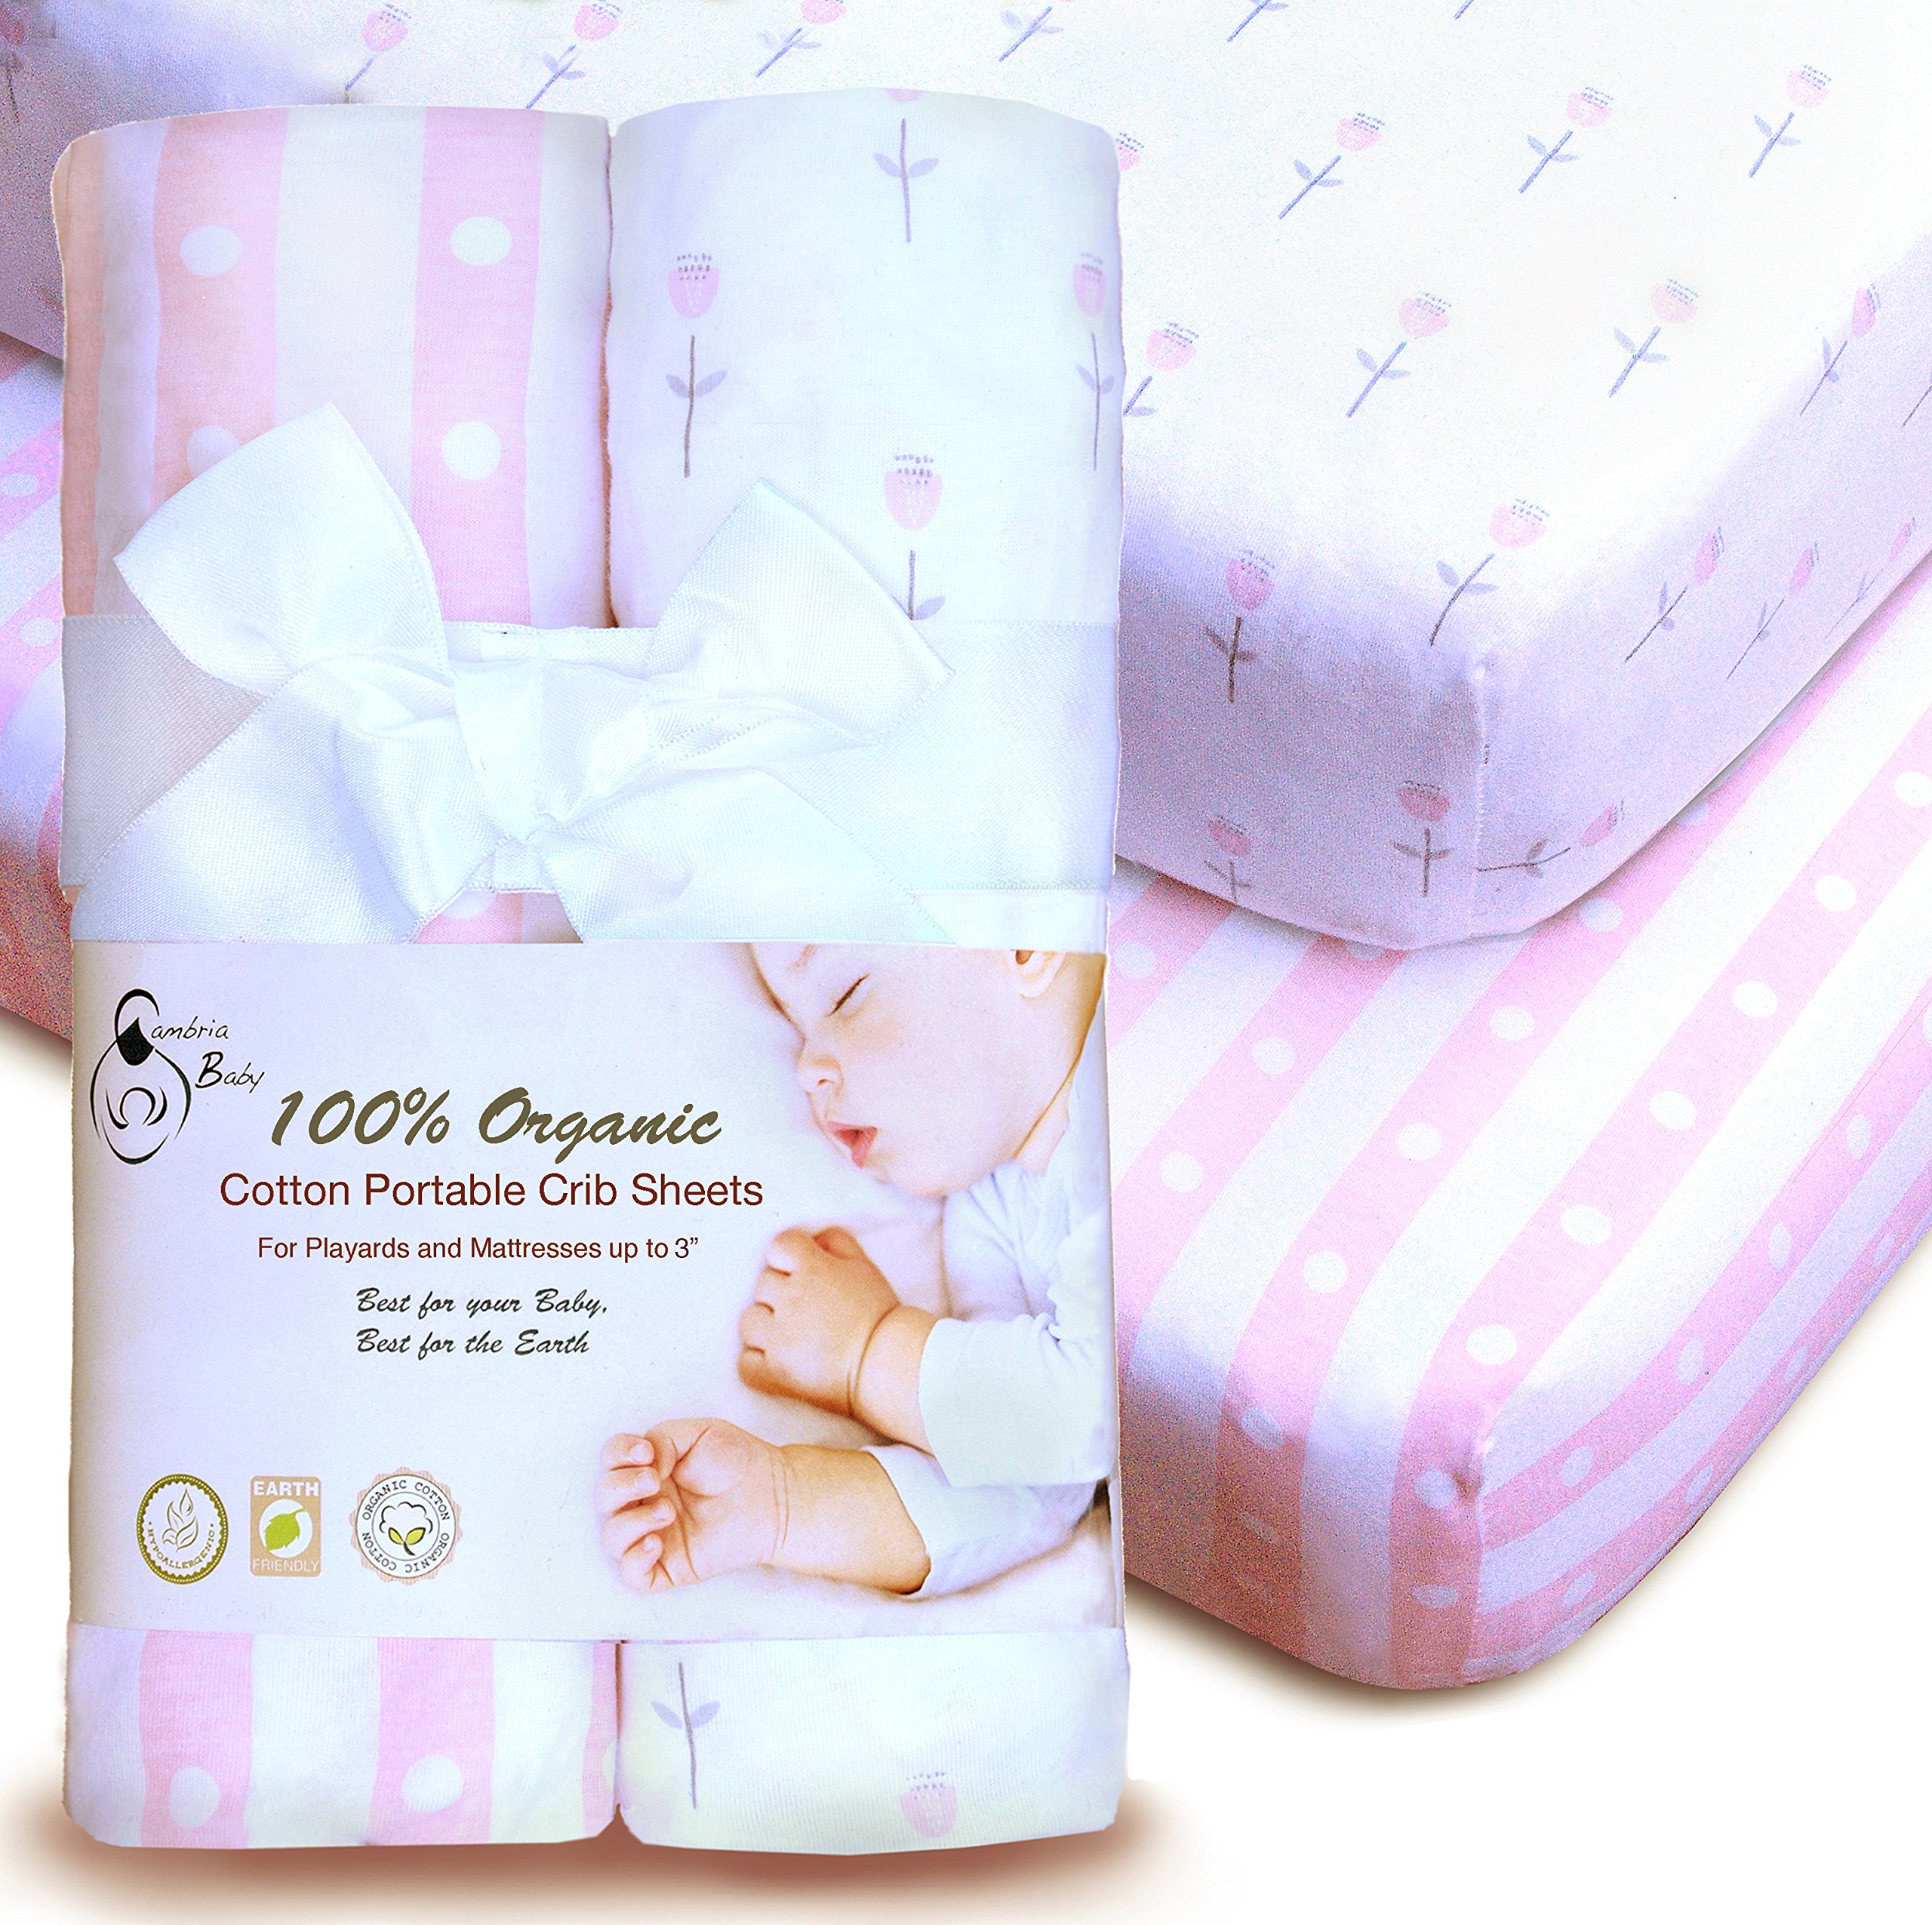 100% Organic Cotton Sheets for Pack 'n Play and Other Portable/Mini Cribs,Pink/White Girl's 2 Pack, for Playard Or up to 3'' Mattress